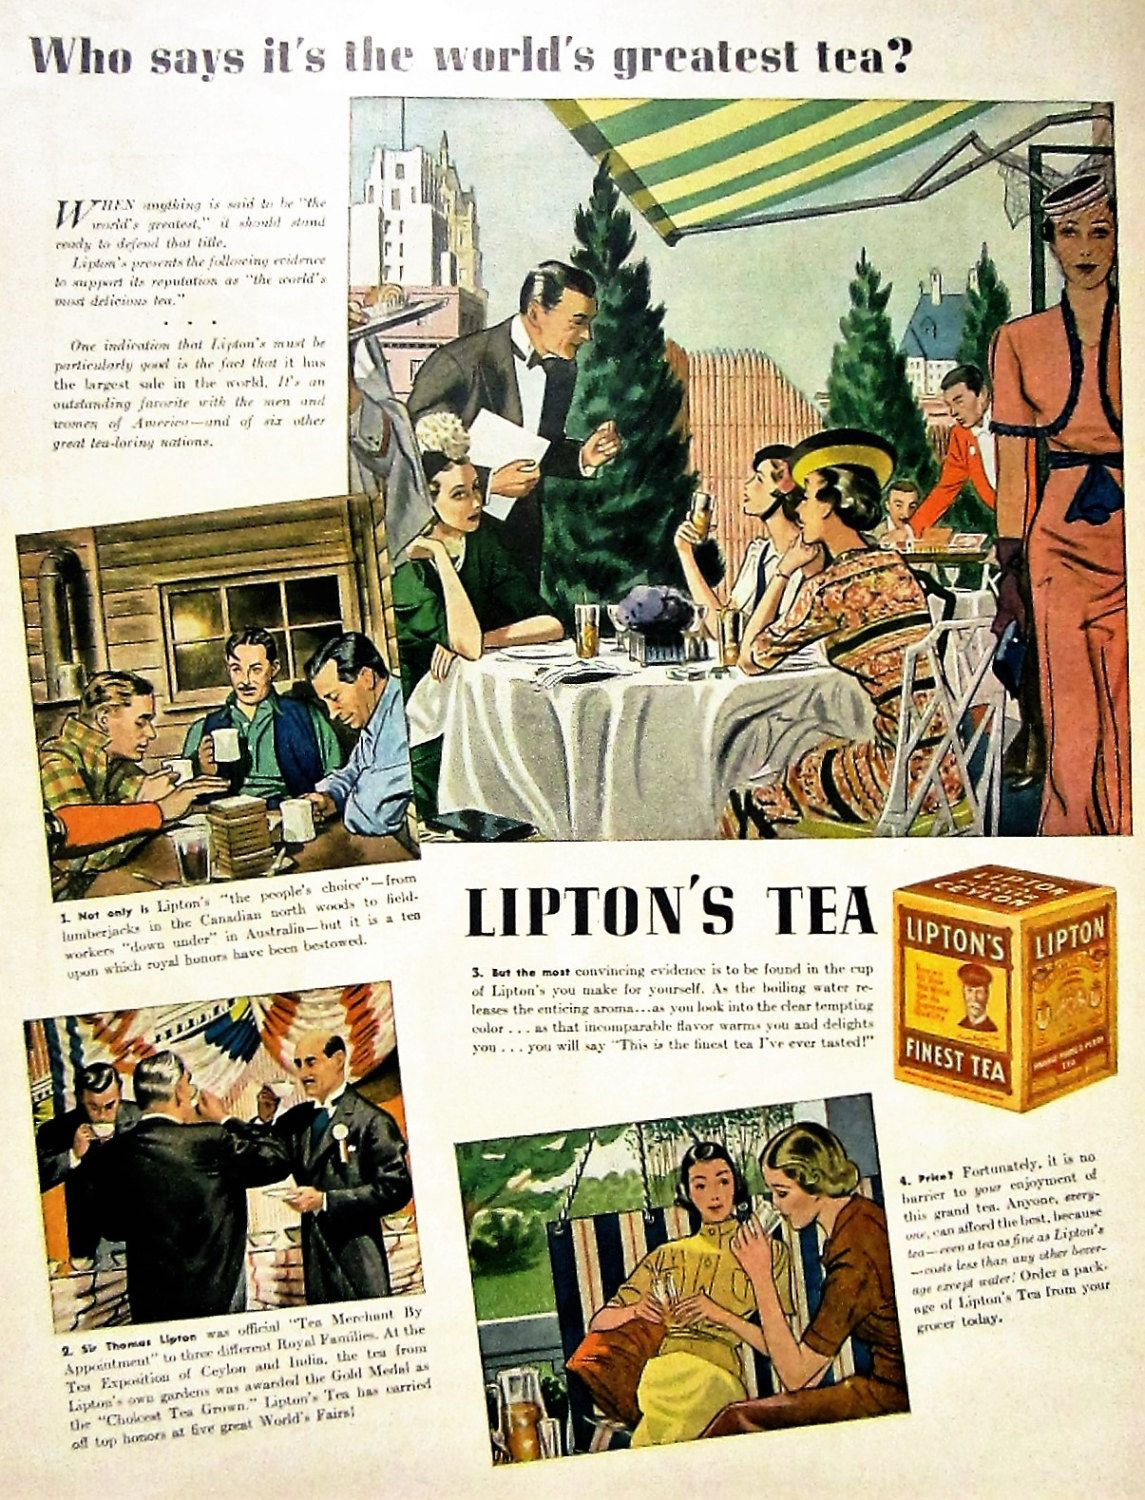 Wall art. Liptons teas Vintage poster Reproduction poster